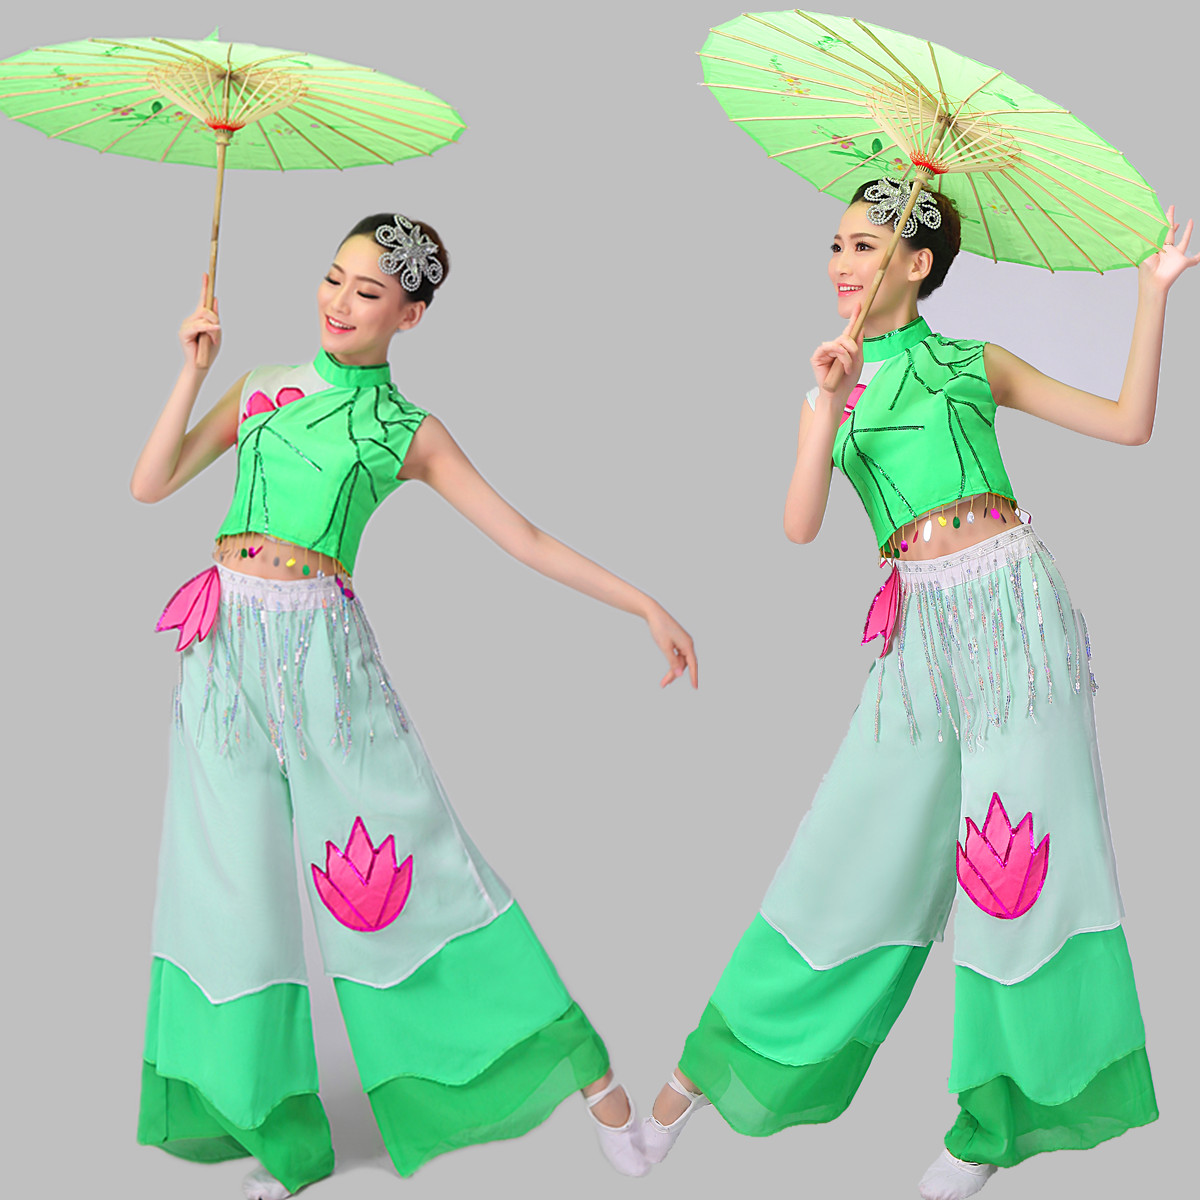 New classical Jiangnan performance clothing rain umbrella dance costumes, dance costume national fan stage Tango clothing specials